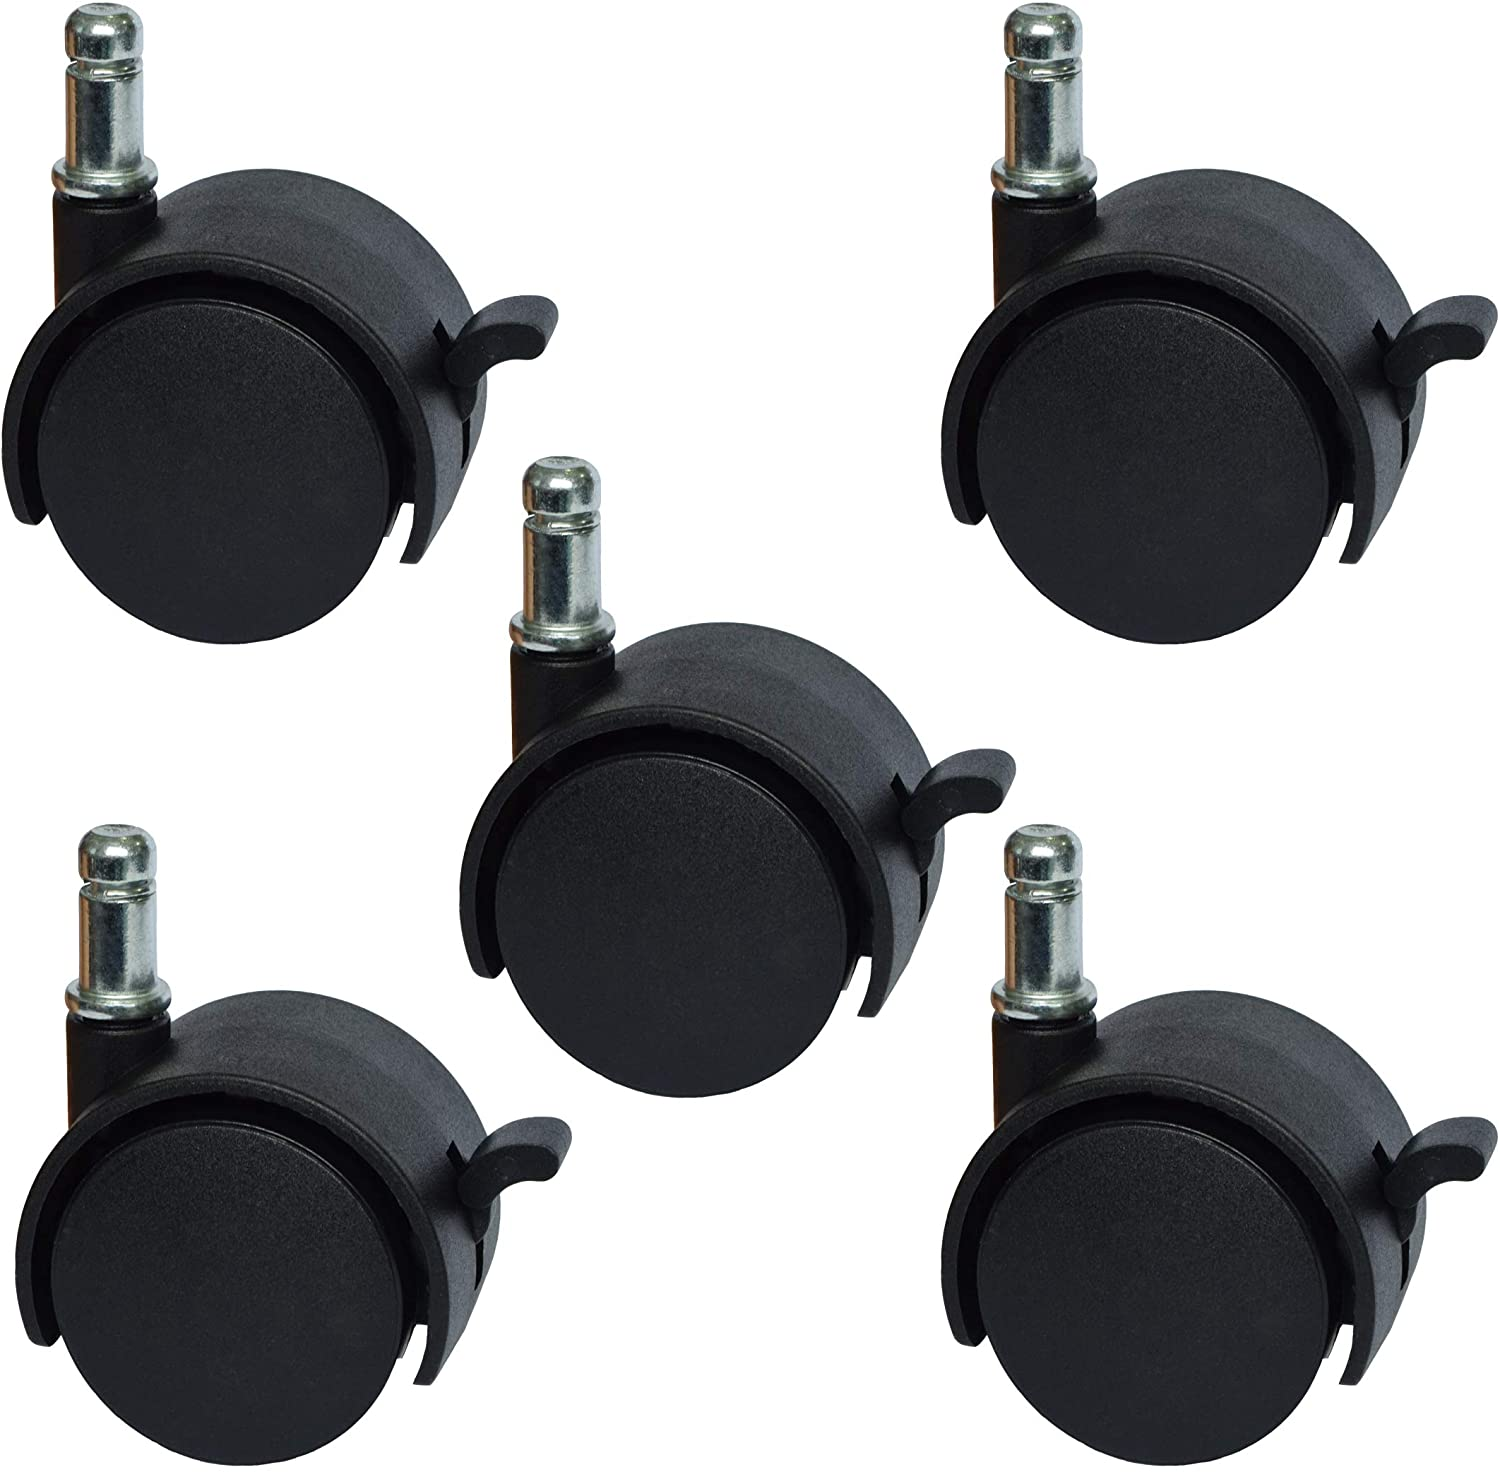 """2"""" Replacement Office Chair or Stool Caster Wheels - with Brake (Set of 5) CasterBrake5011"""